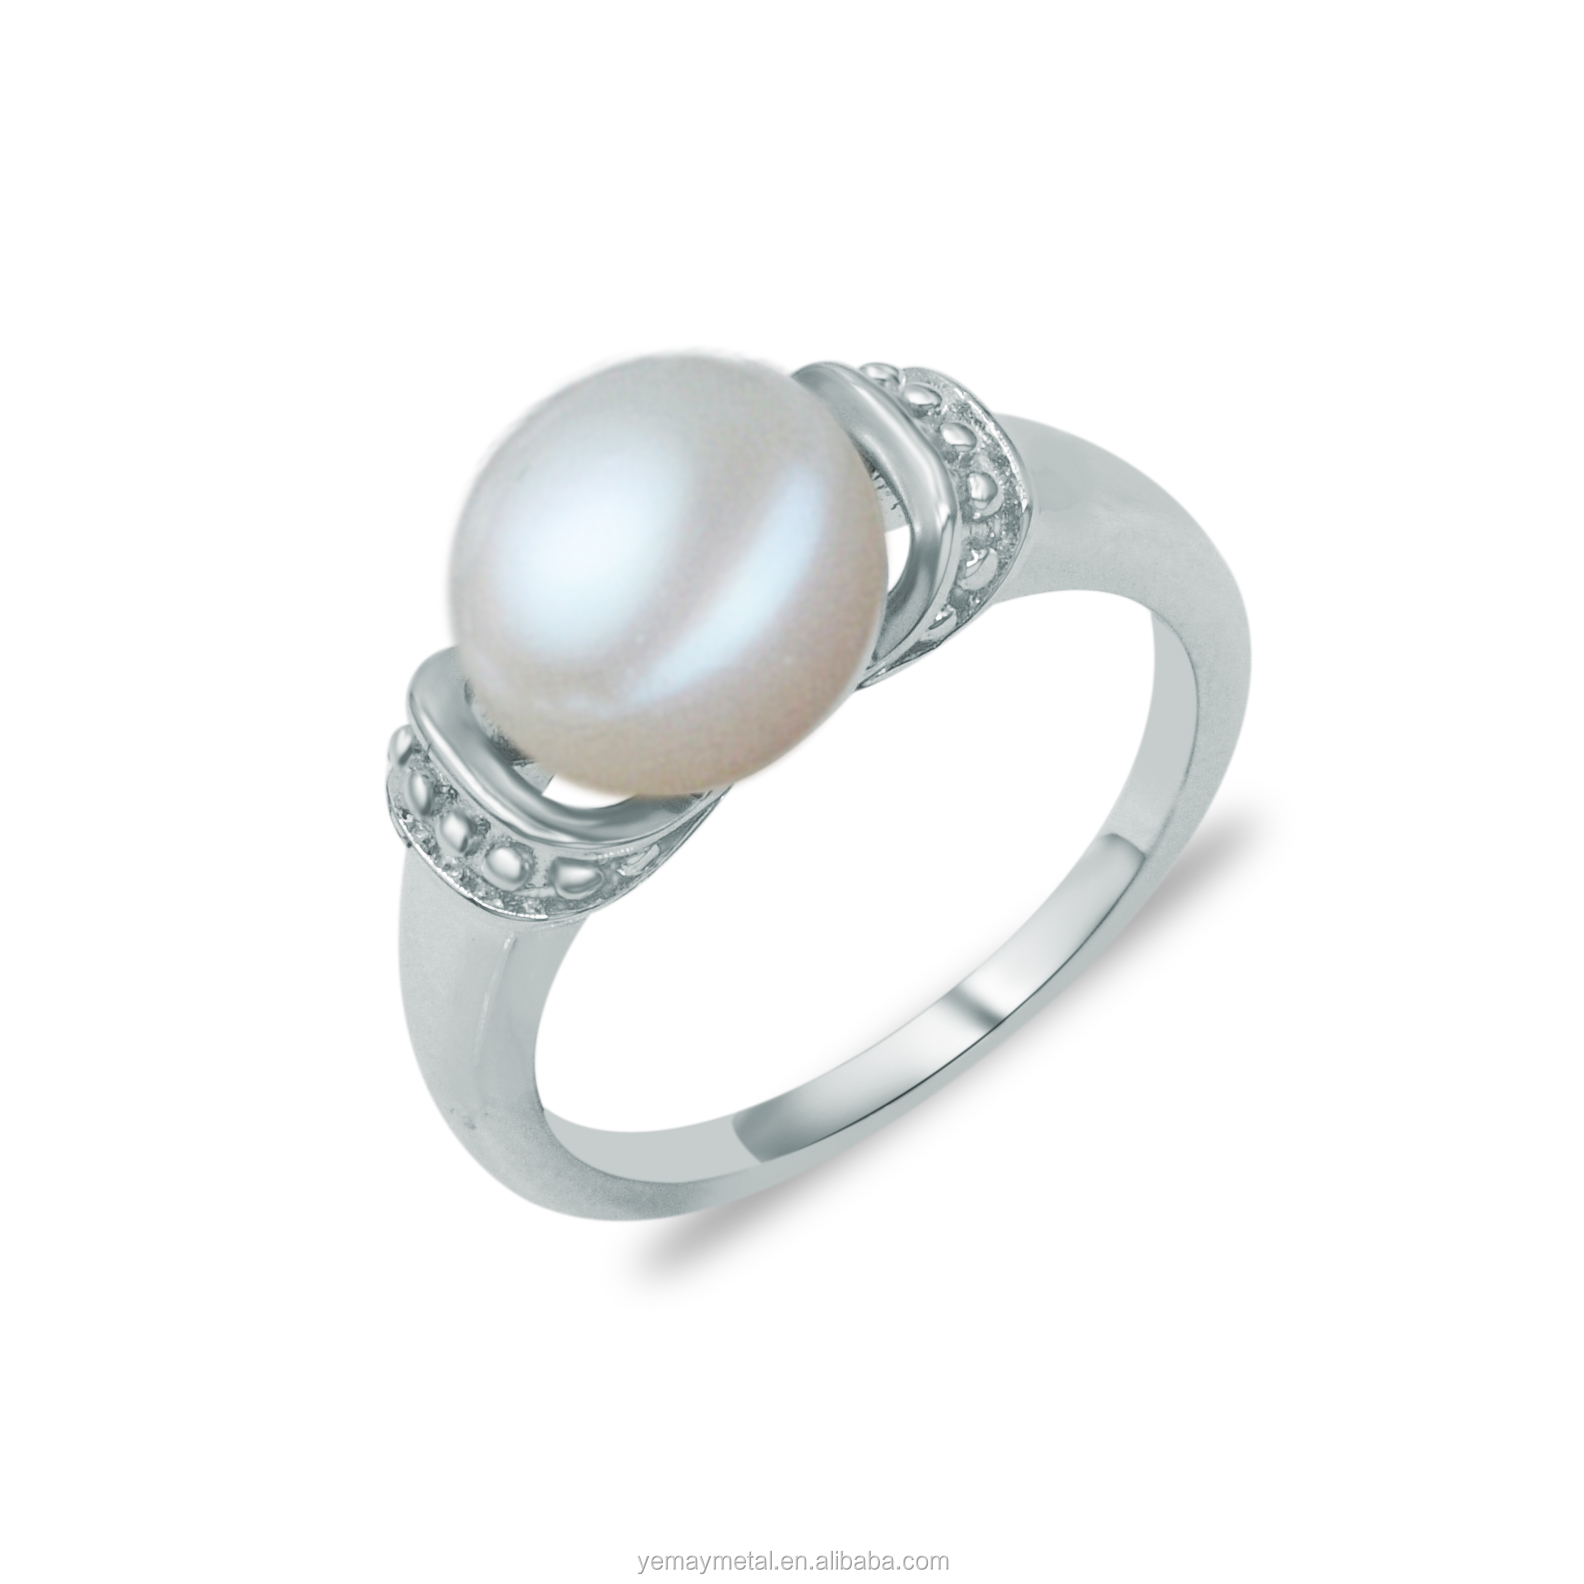 lyst pearl and georg jensen product yellow engagement rings ring white gallery diamond freshwater gold jewelry